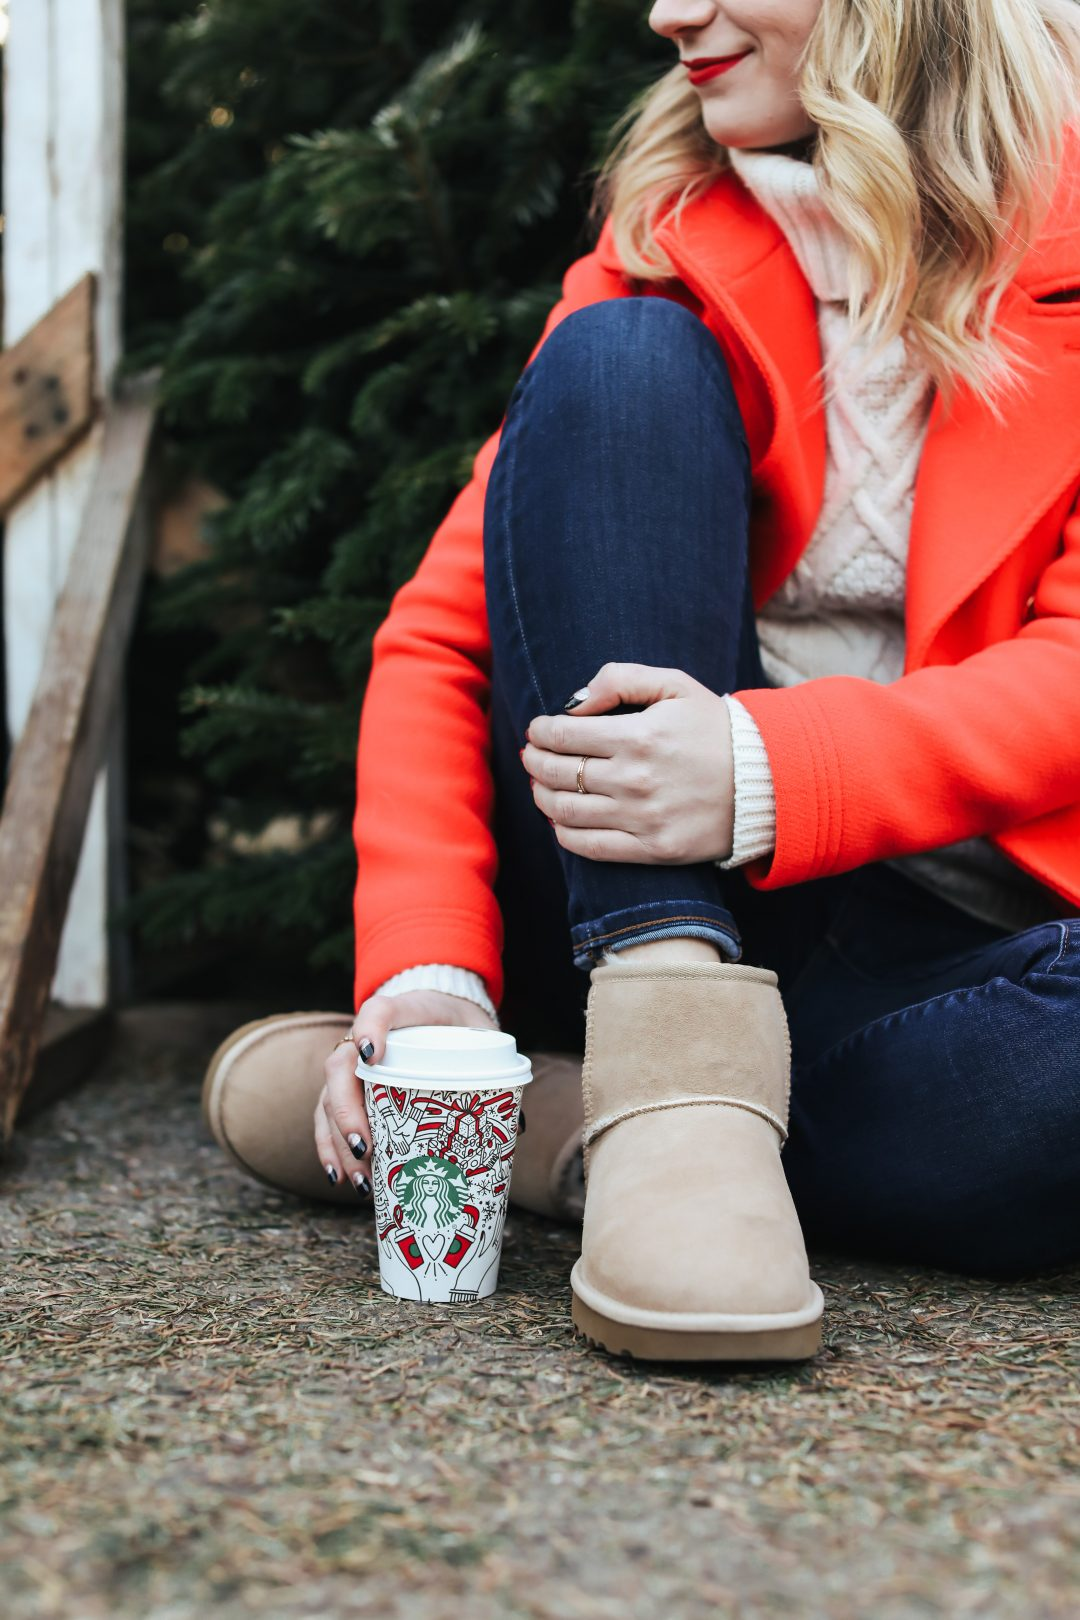 Feeling Festive in UGG Boots from Zappos.com.